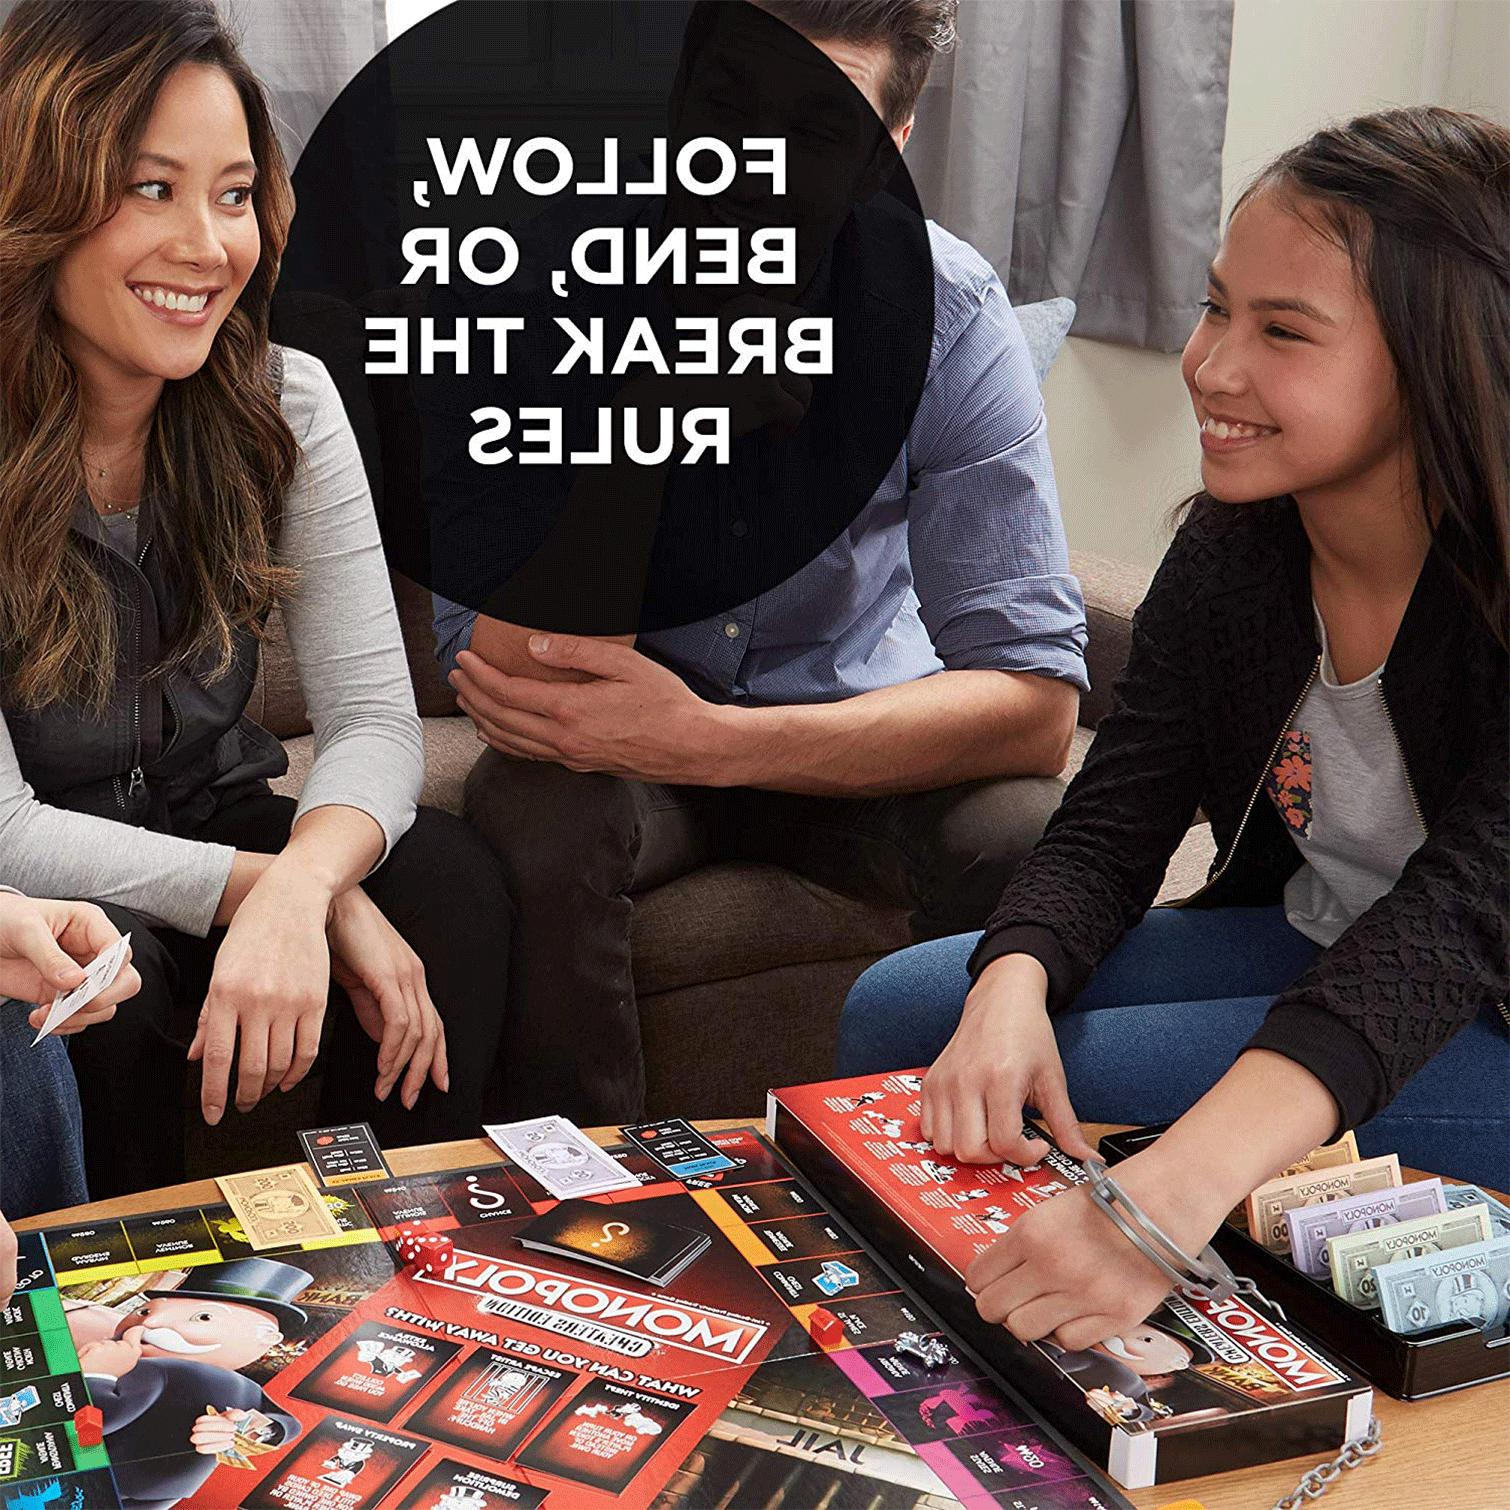 Monopoly Board Cheaters 8 Up